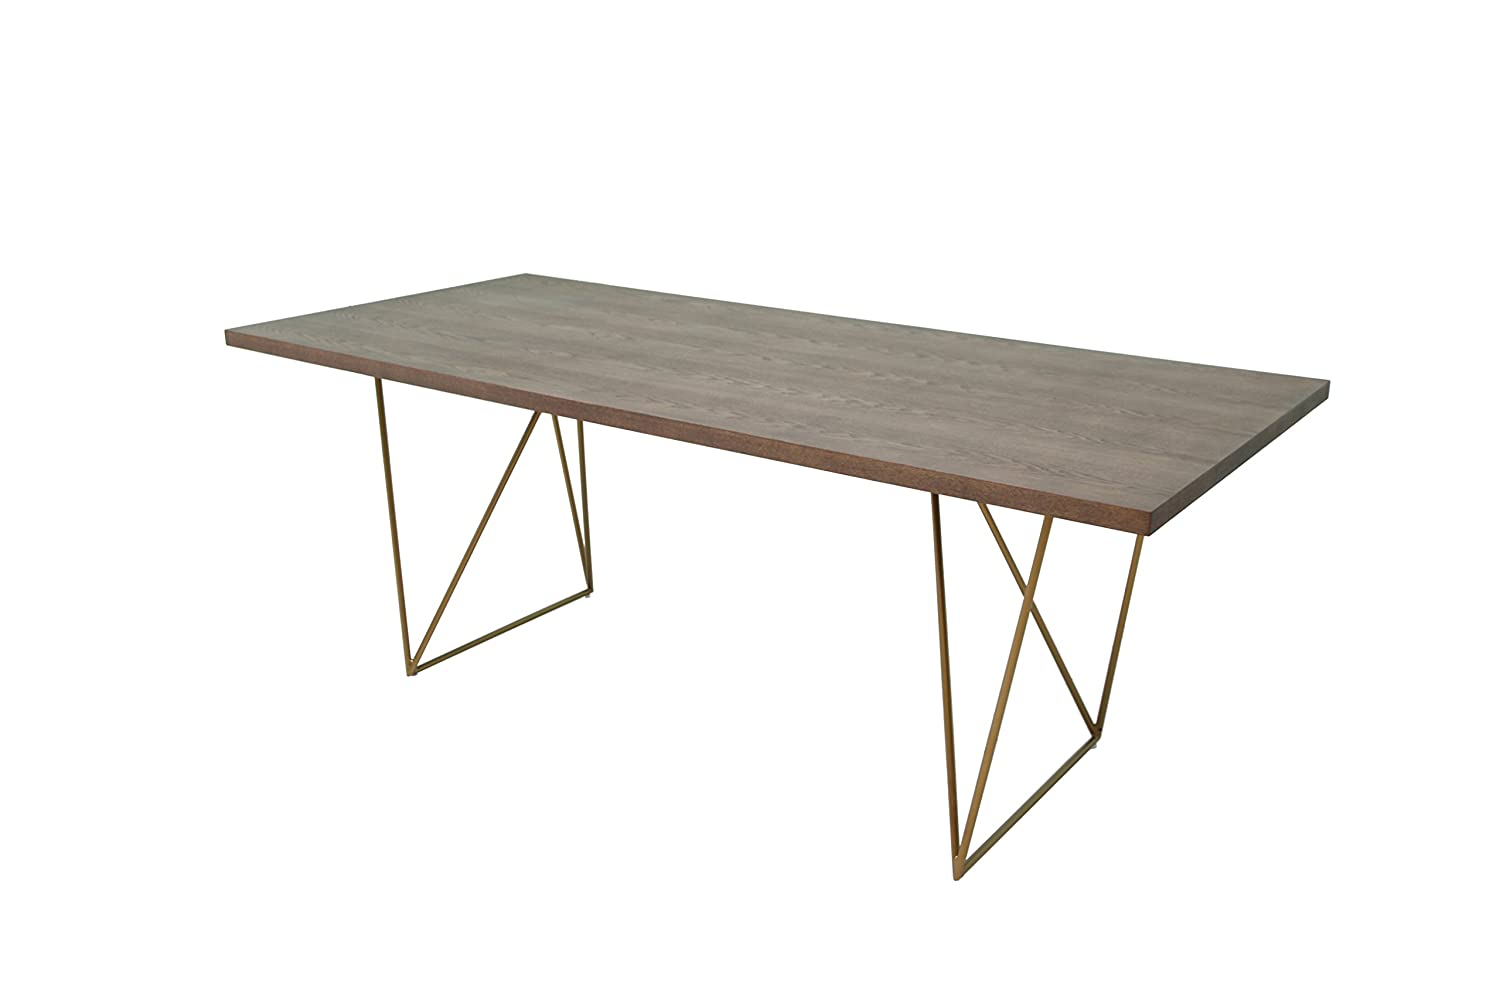 Limari Home Kezia Collection Mid-Century Modern Contemporary Rectangular Floating Dining Table with Geometric Antique Brass Legs, Tobacco Veneer